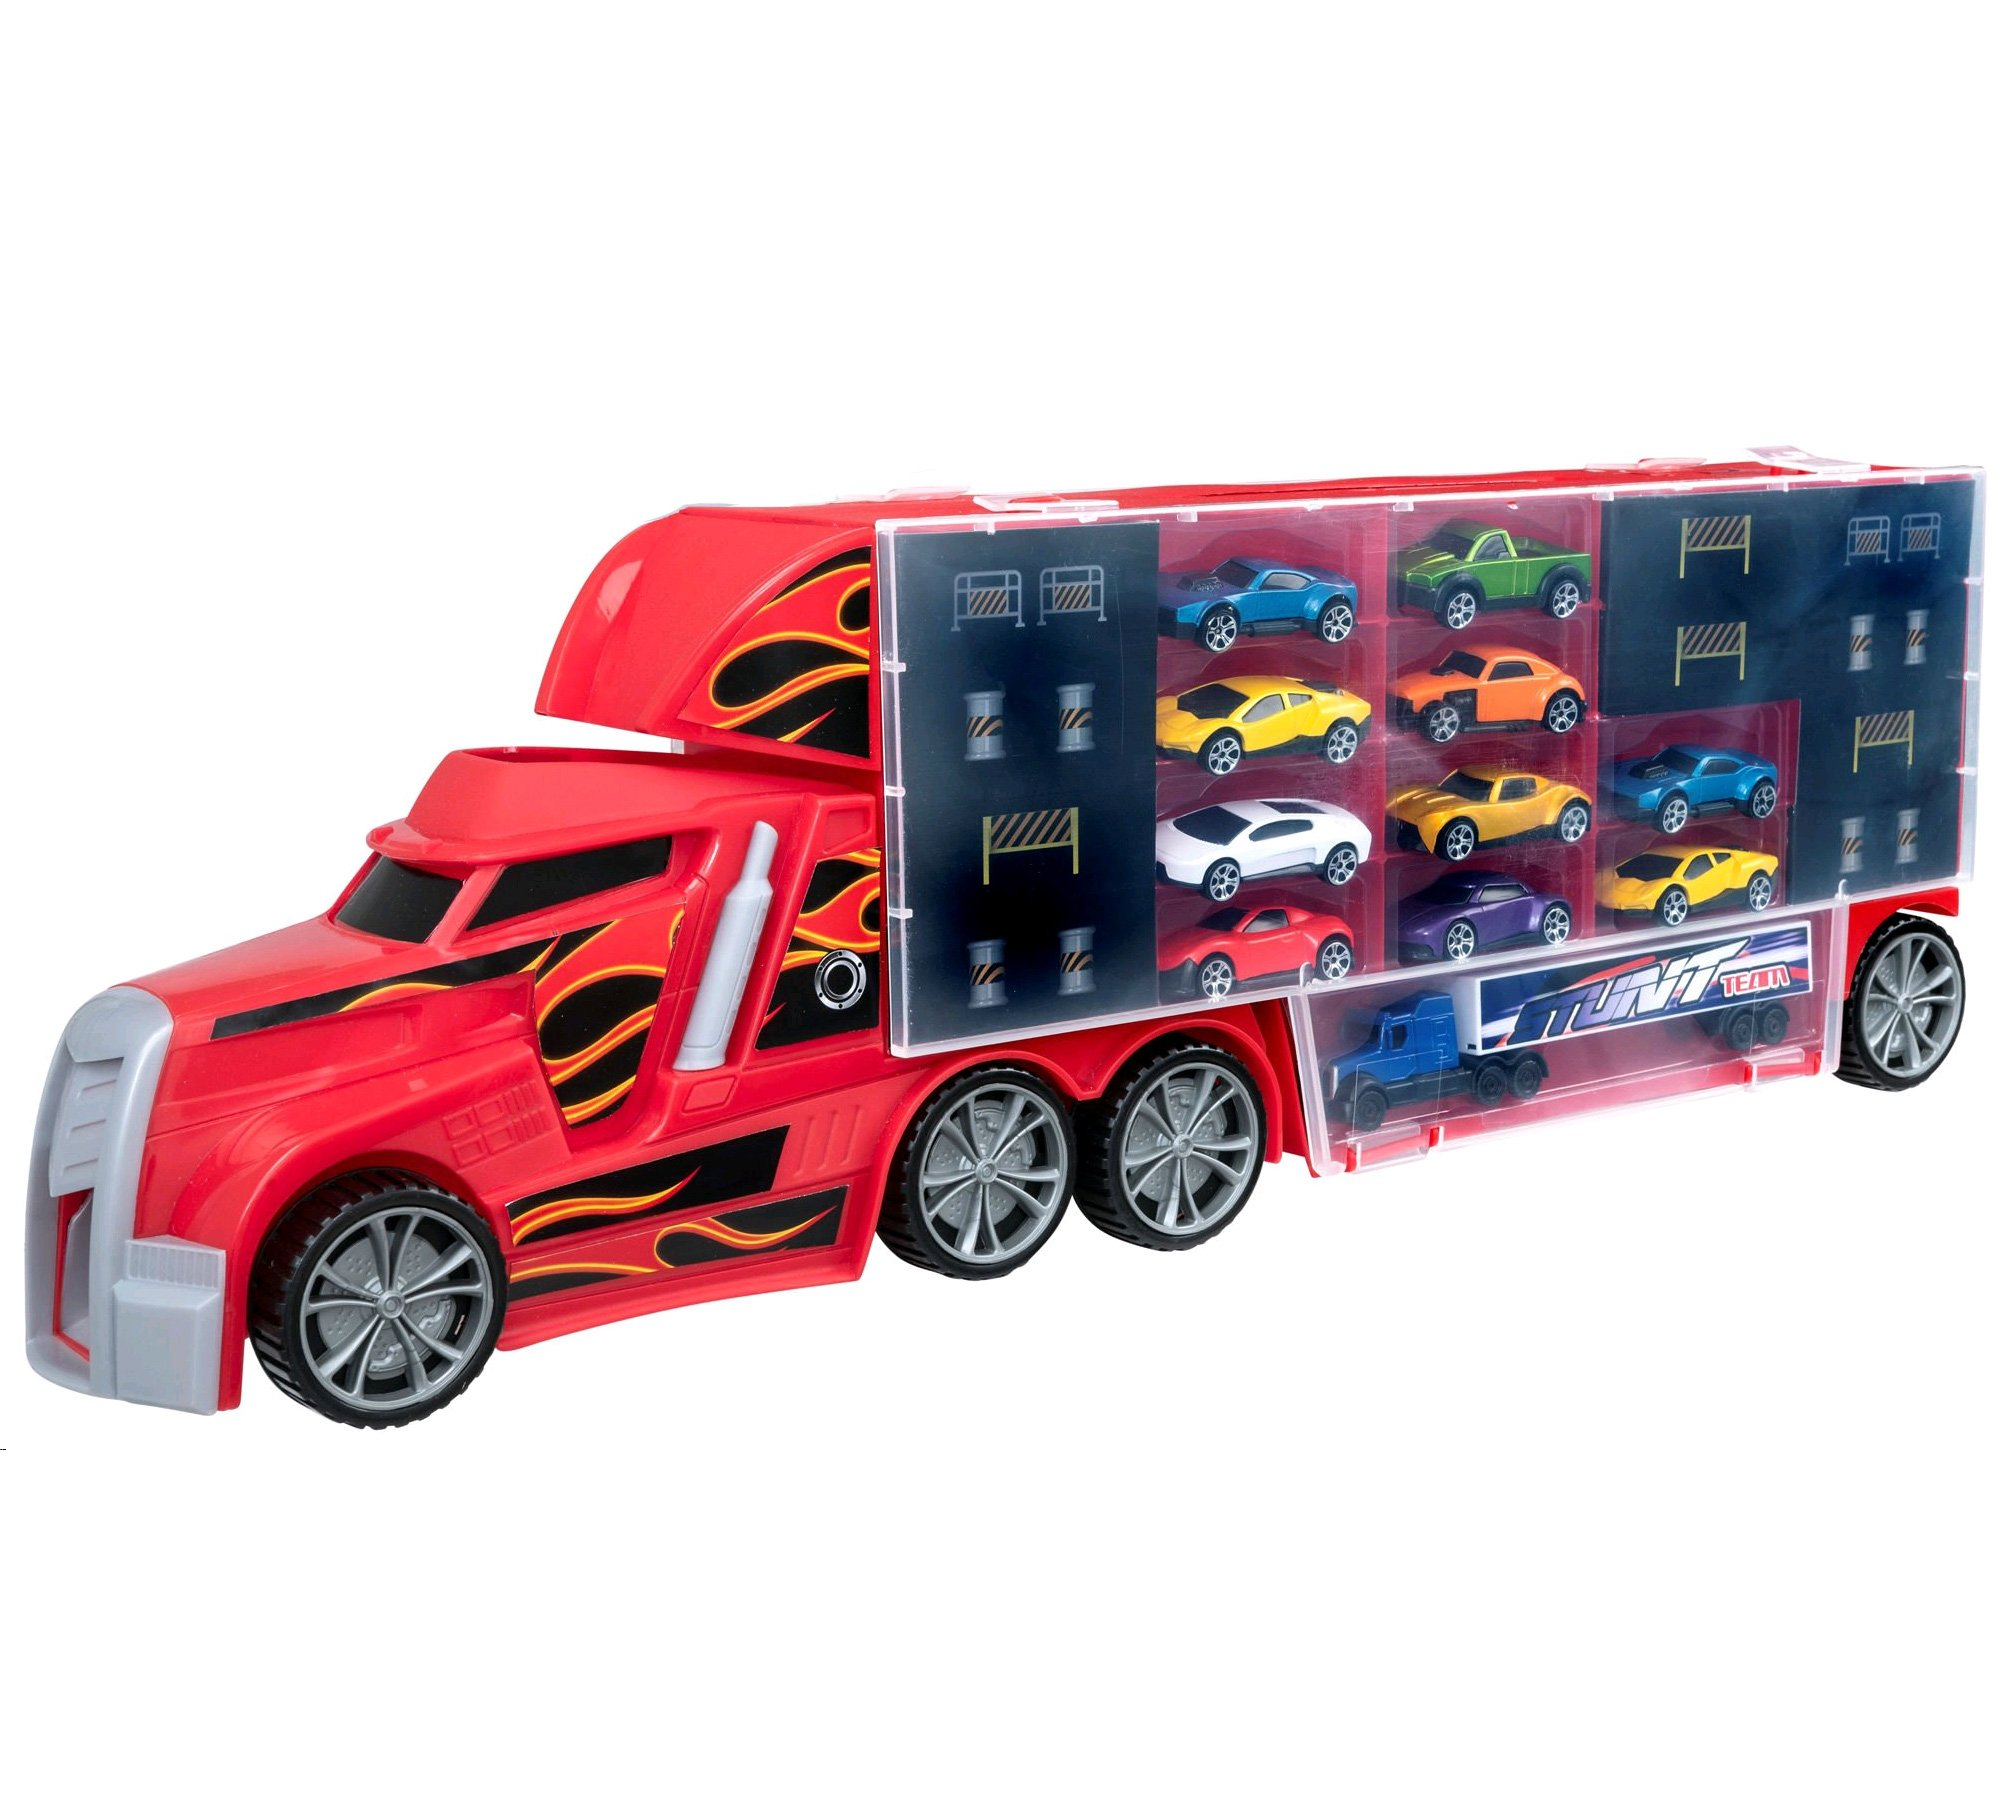 Teamsterz - Stunt Transporter with 10 cars (1416873)